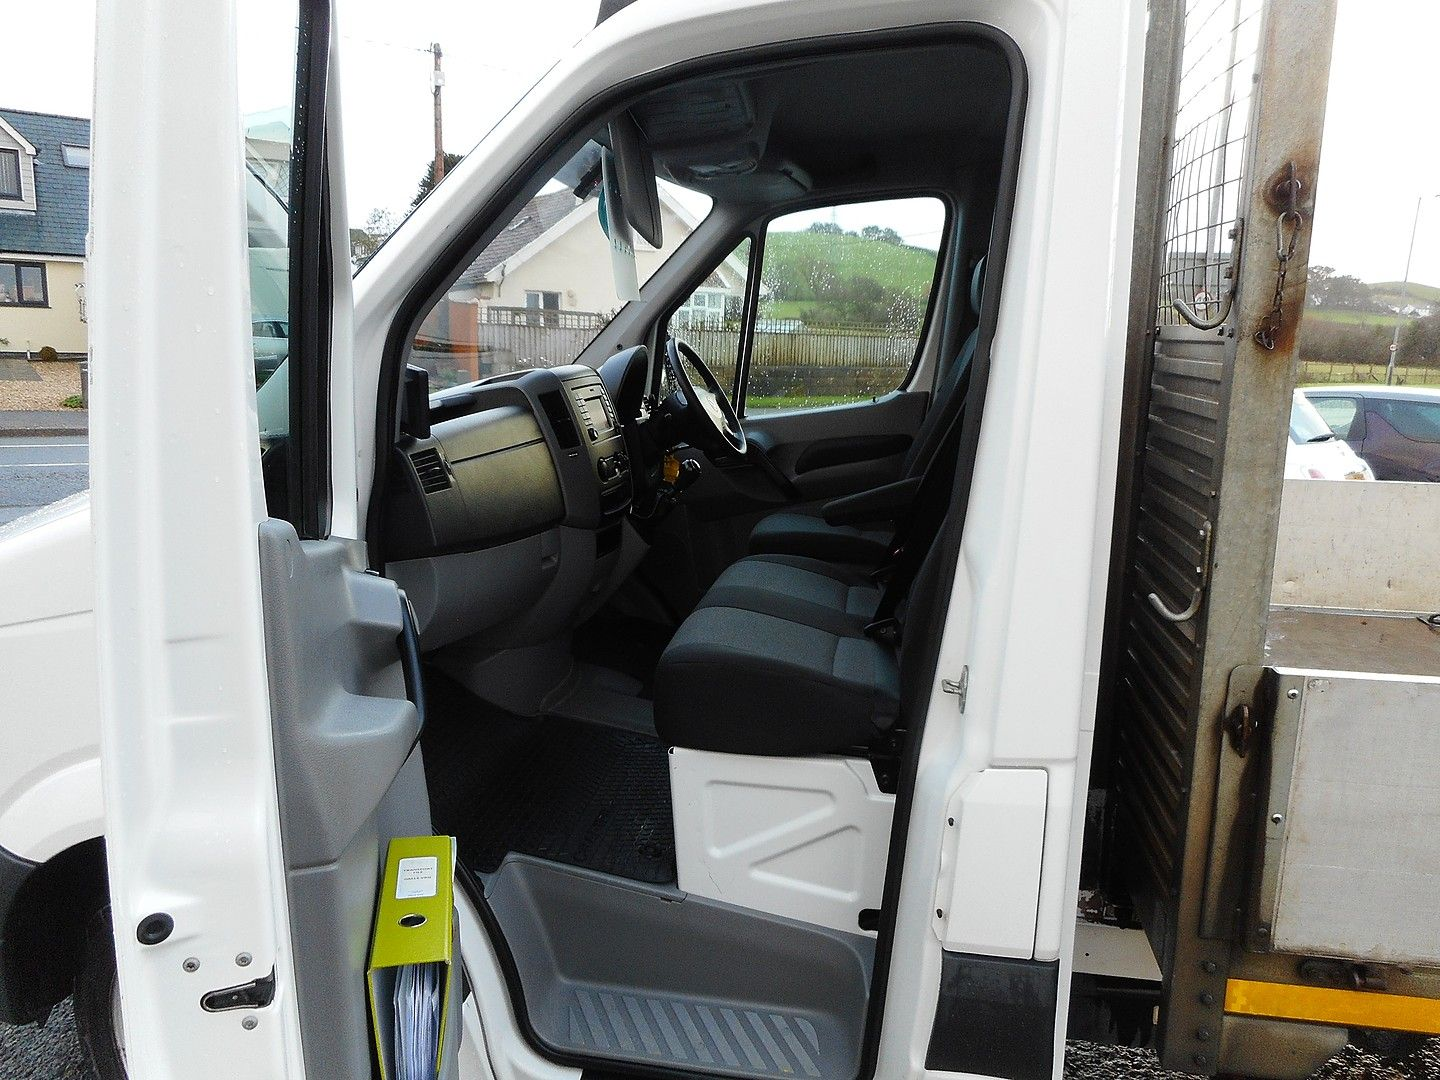 VOLKSWAGEN Crafter CR35 136PS 2.0TDI MWB WITH TAIL LIFT (2015) - Picture 14